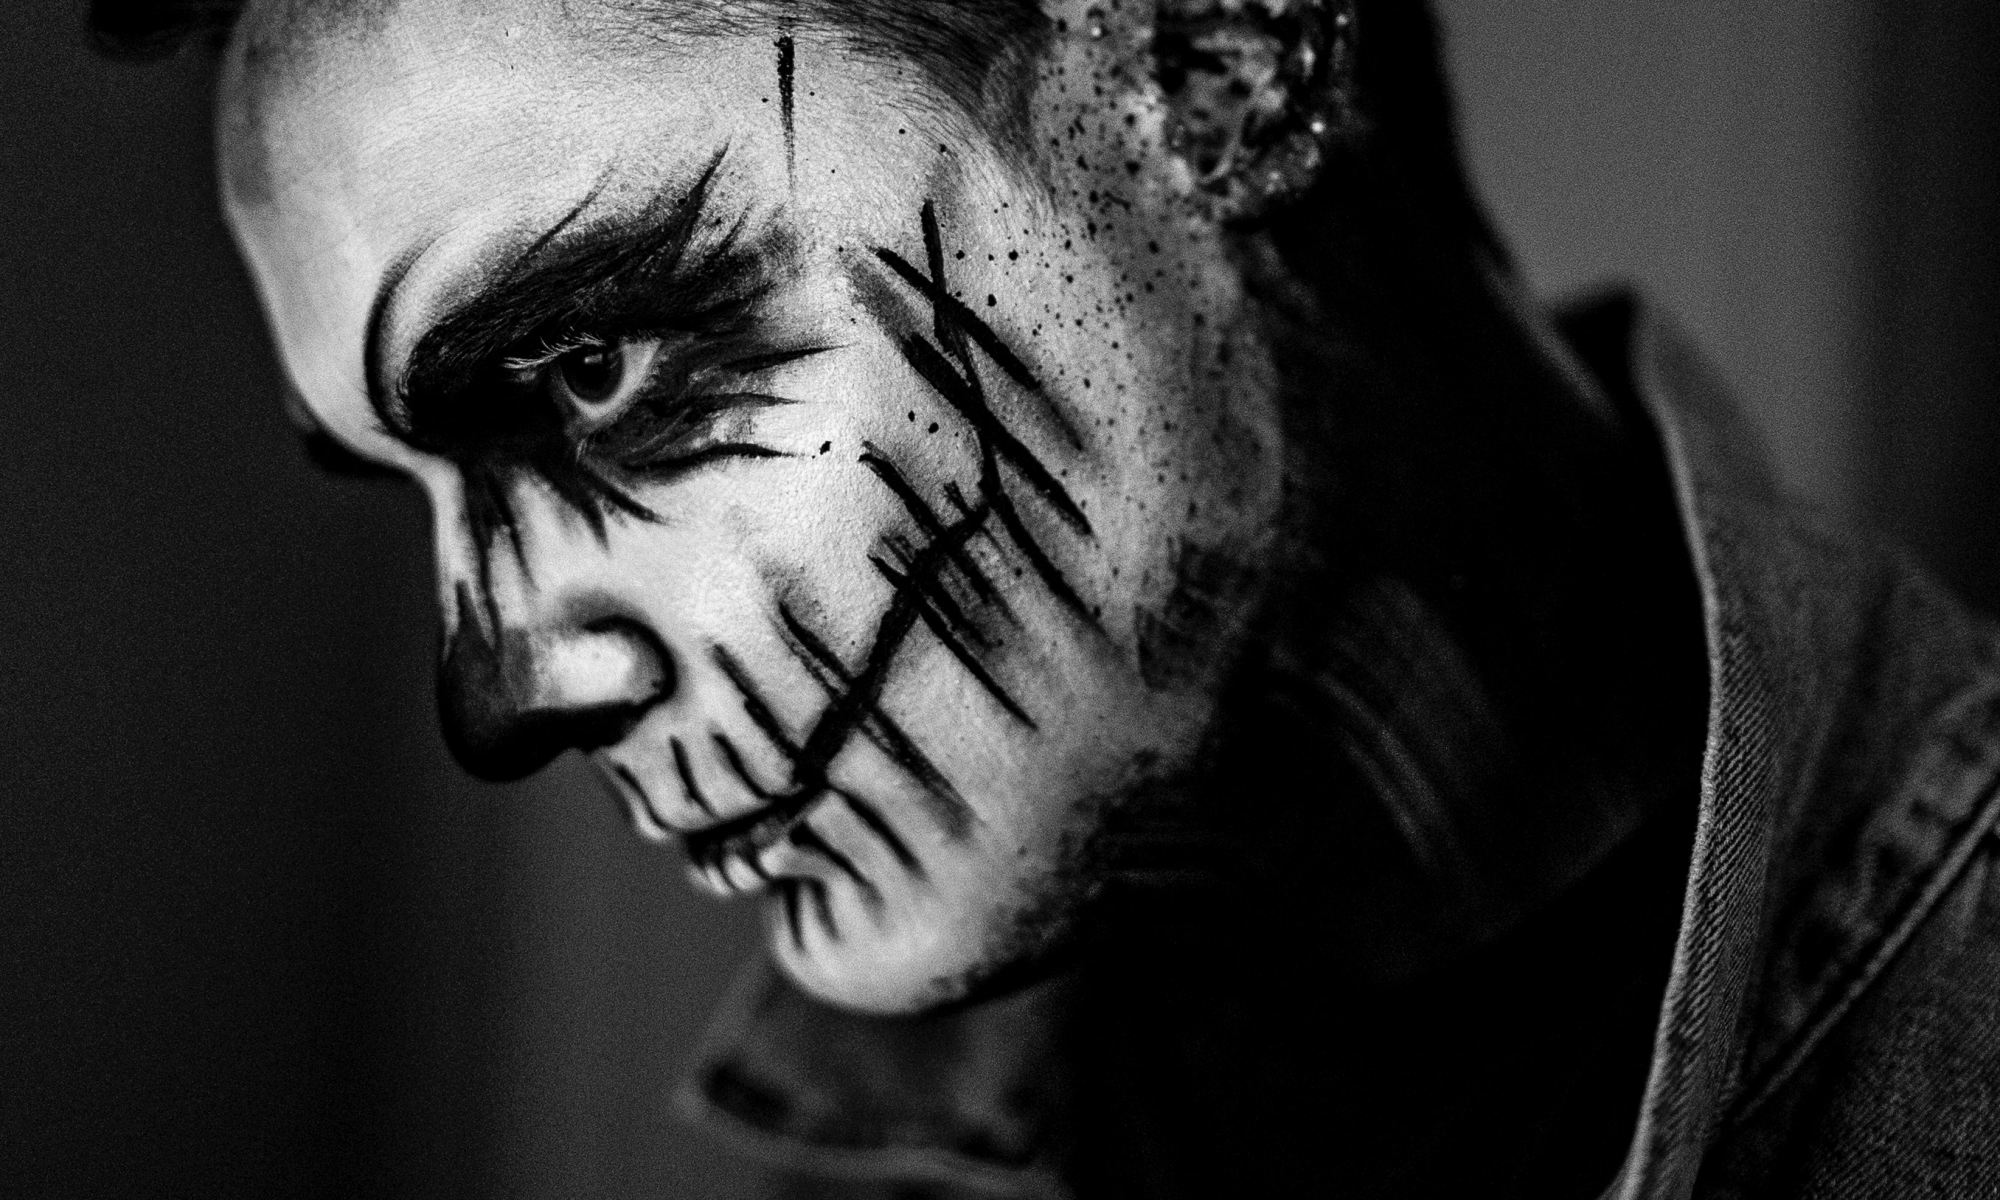 Sociopathic man with painted face